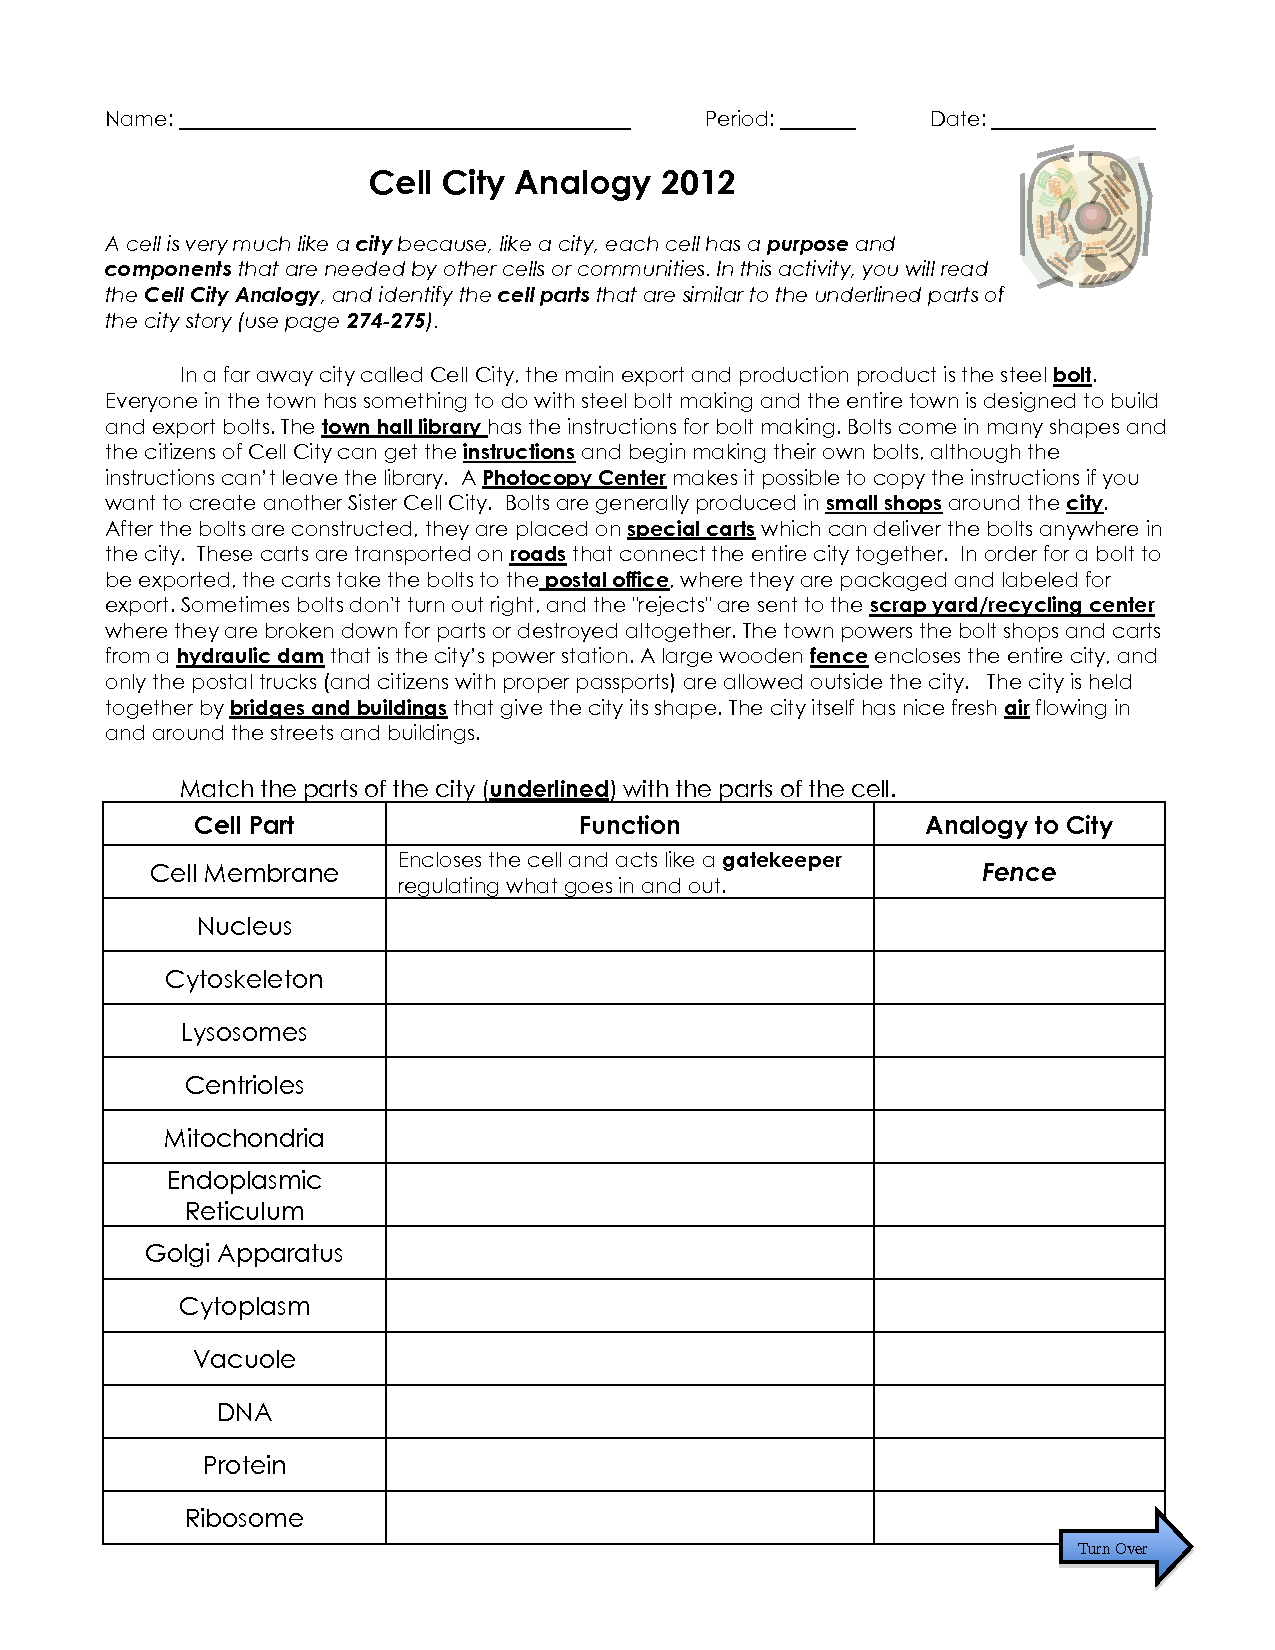 cell city analogy worksheet 1275—1650